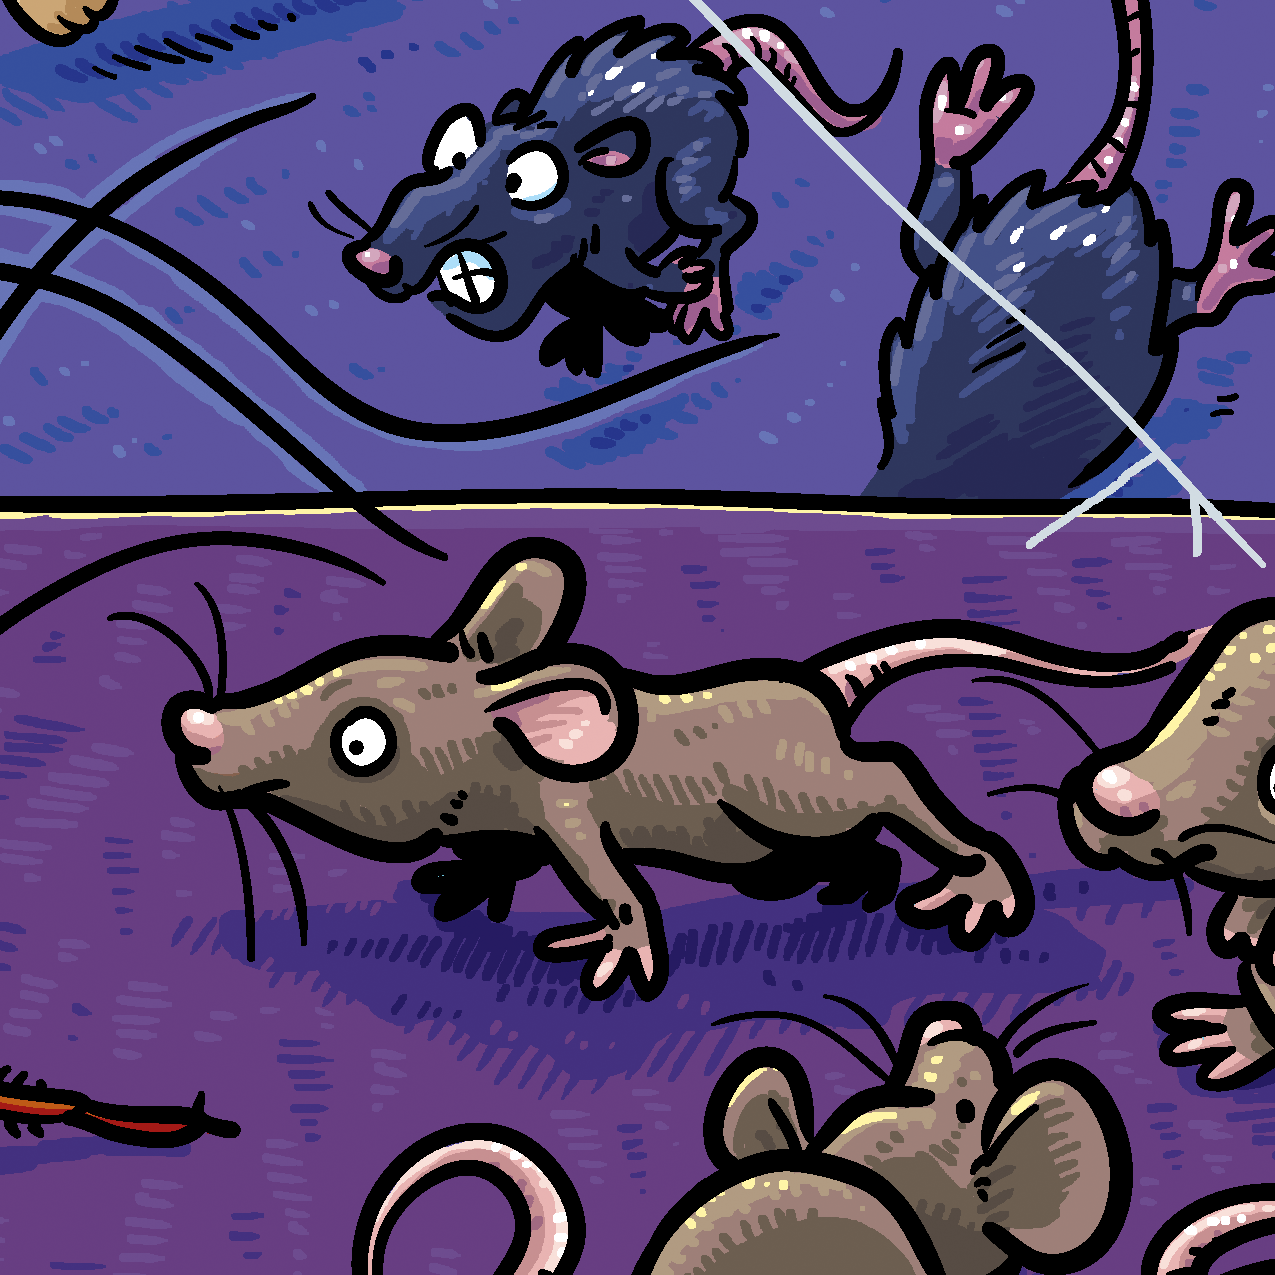 Mouse illustration from Treasure Beyond Measure